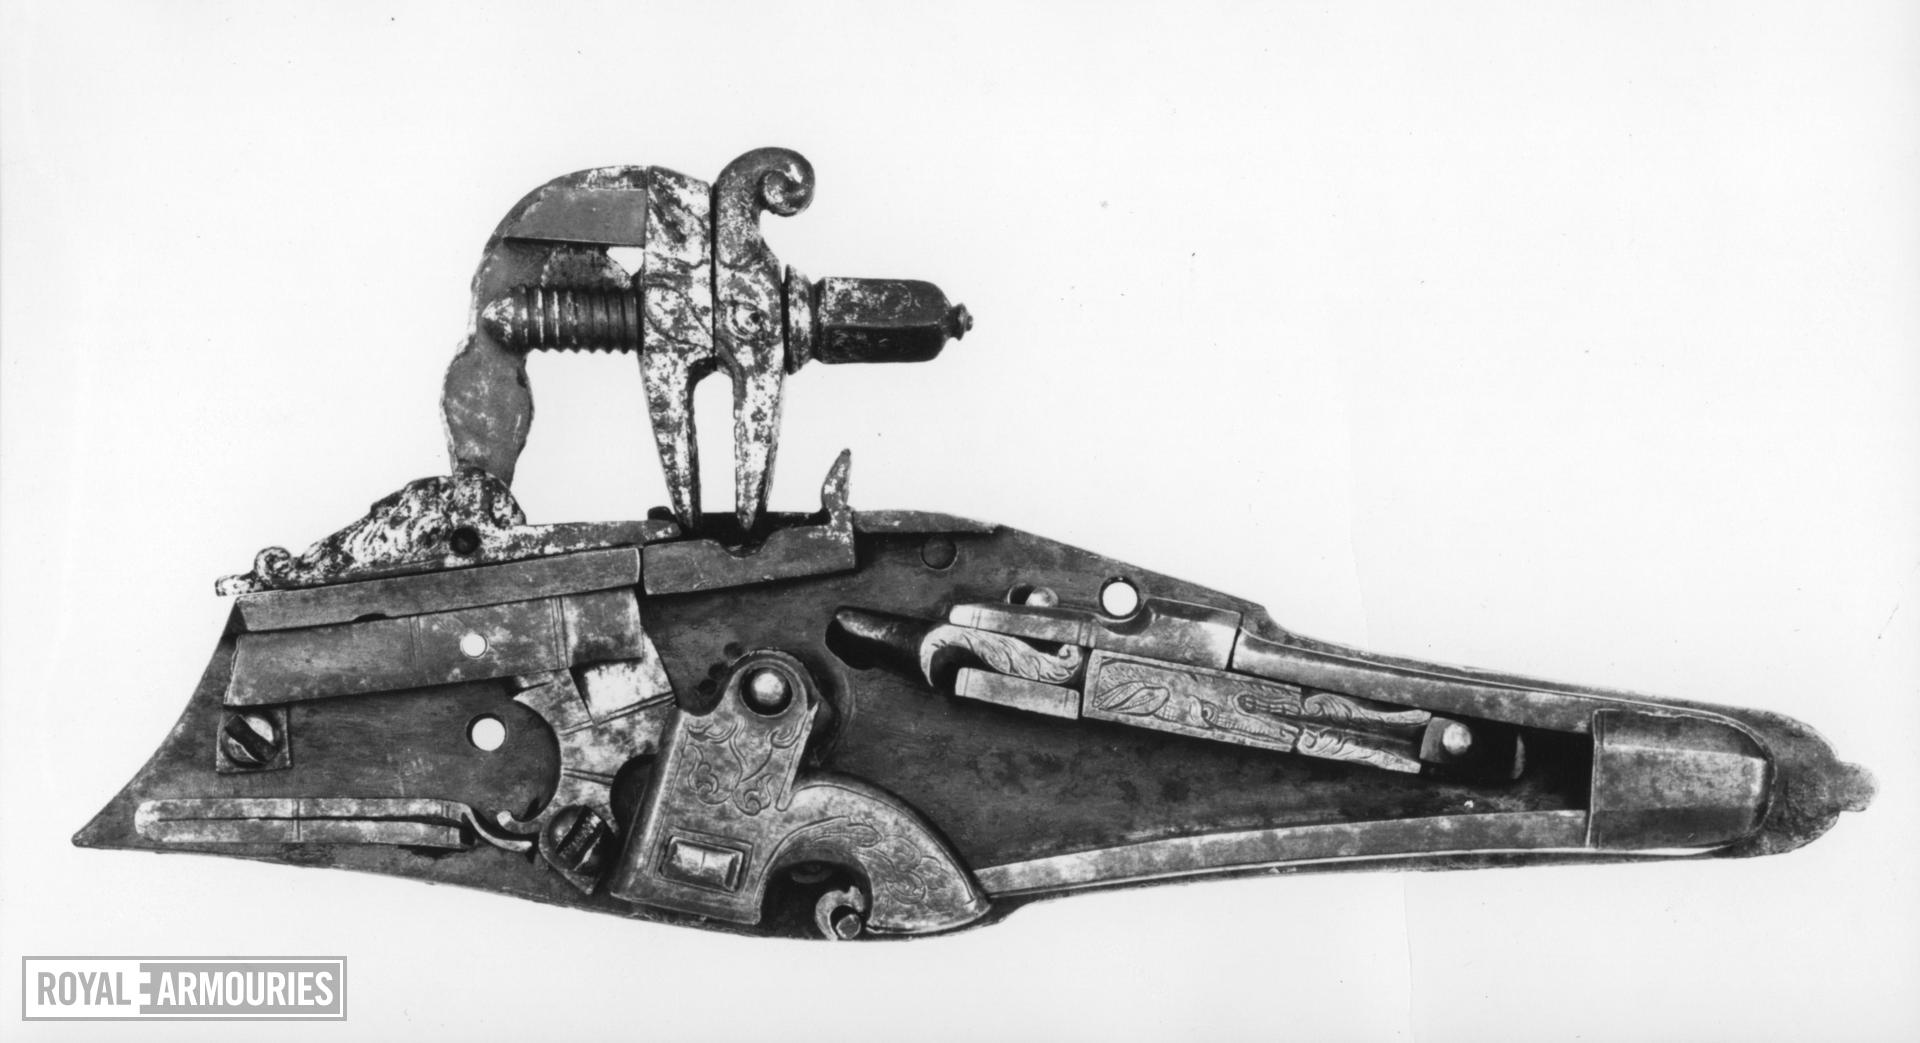 Wheellock pistol - 'Forget-me-not' Known as the 'Forget-me-not' pistol.